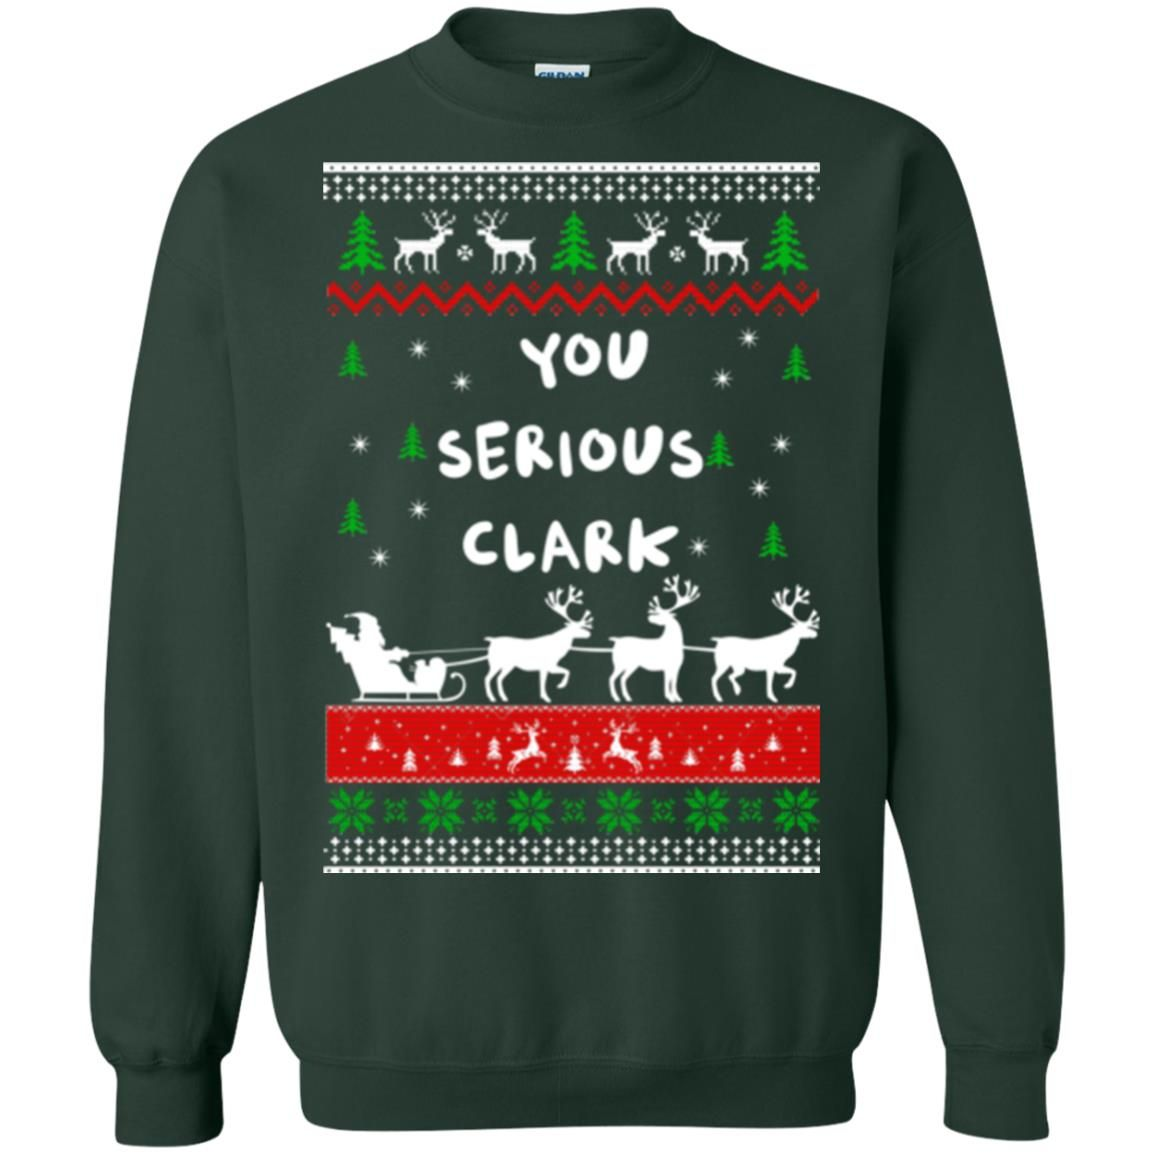 image 1726 - Christmas Vacation: You serious Clark sweater, t-shirt